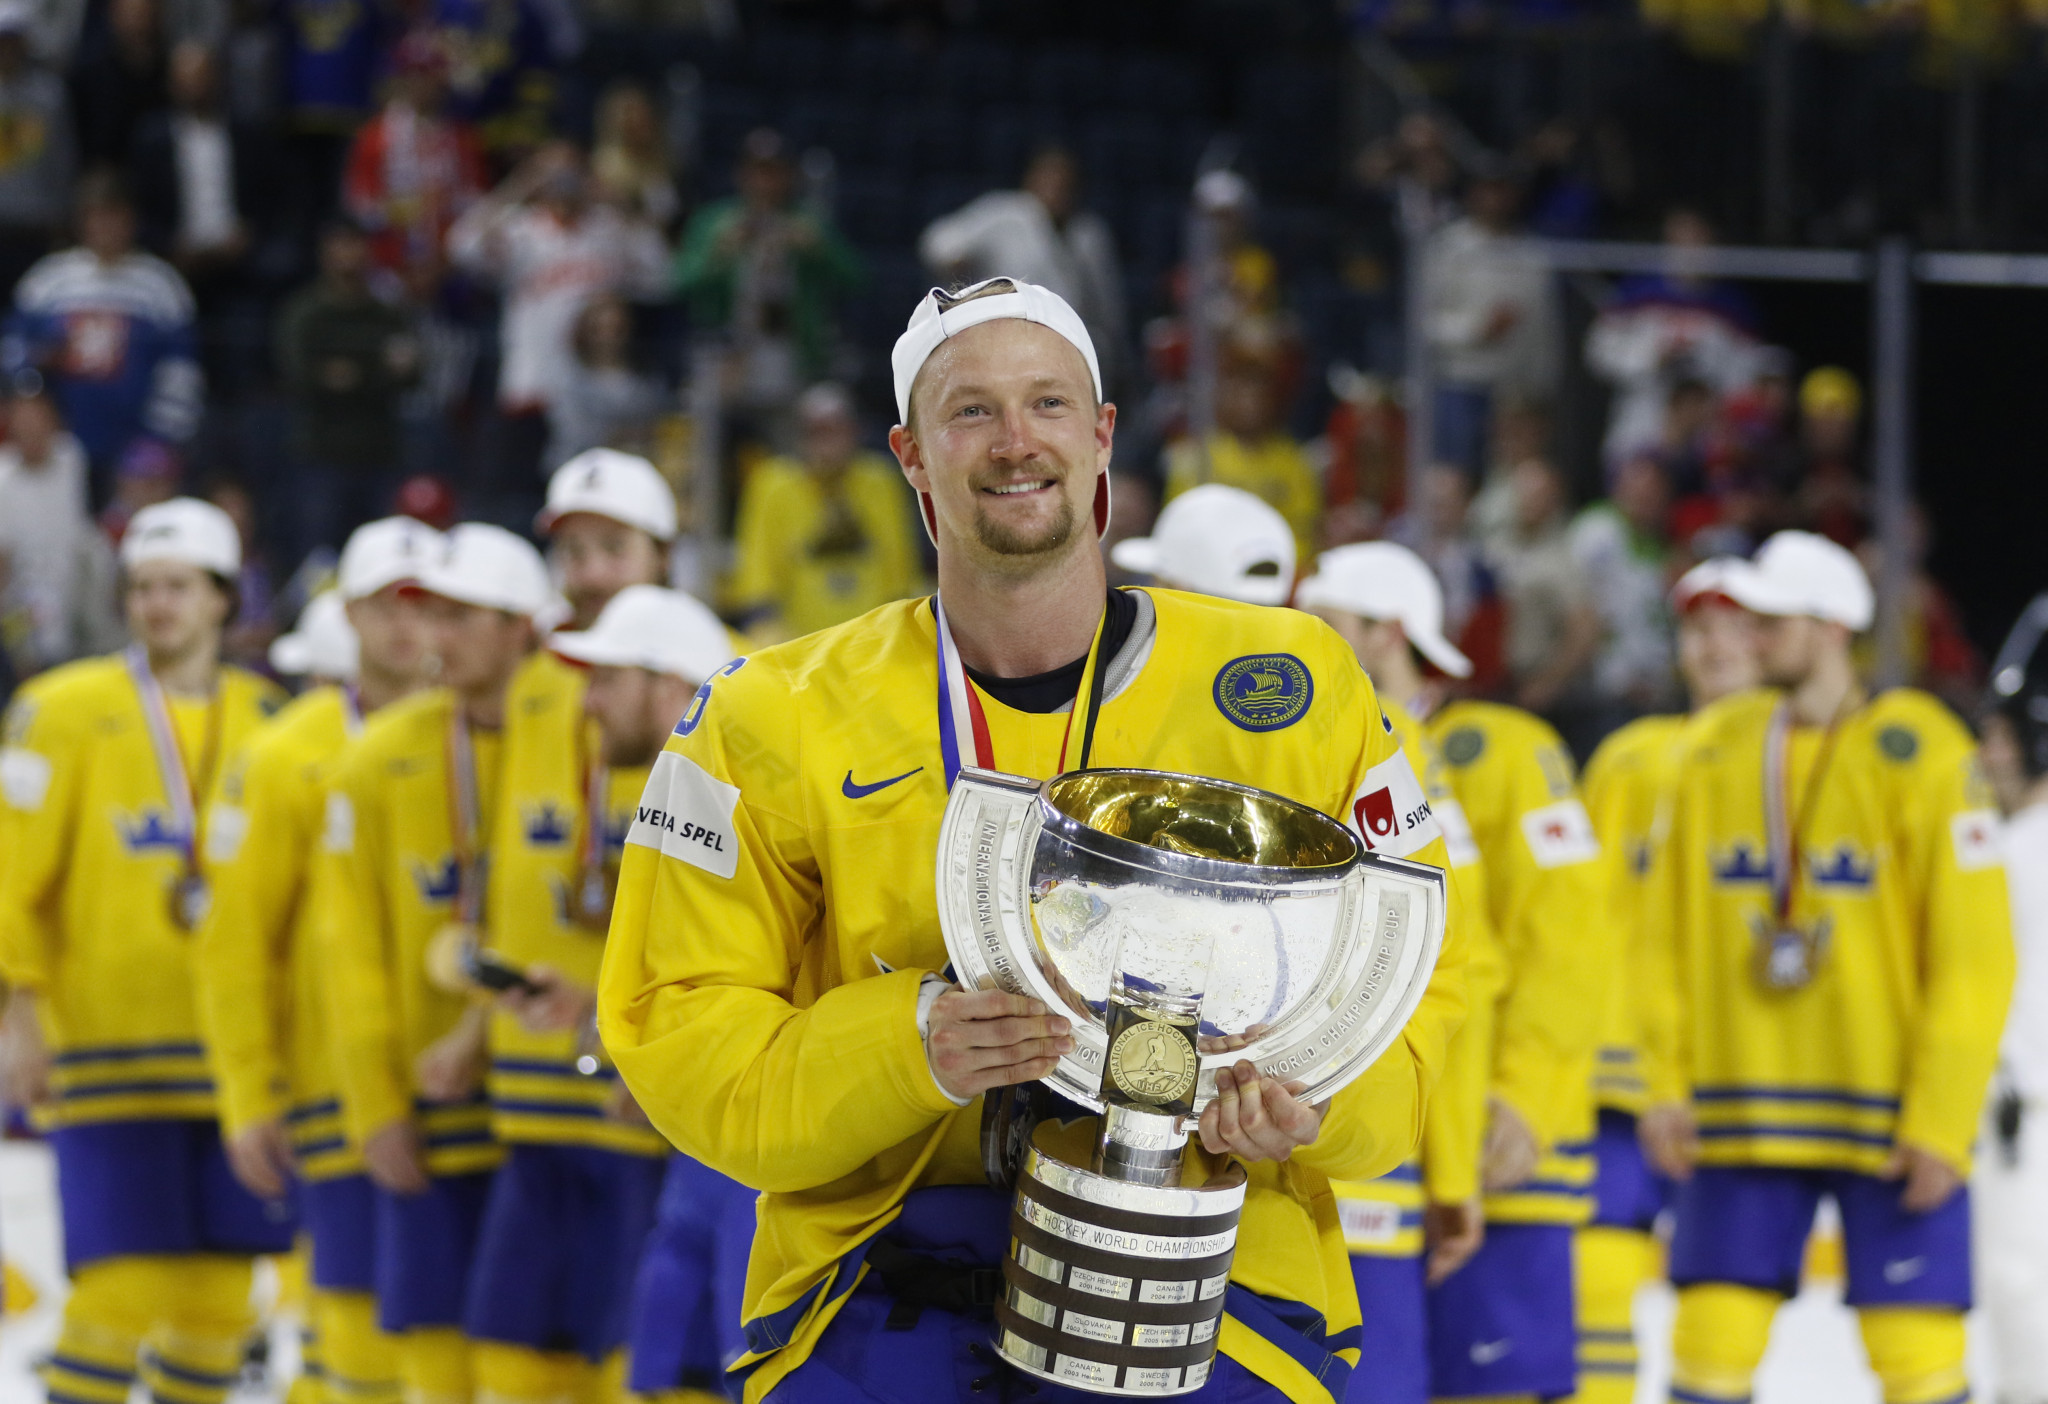 Sweden are defending champions at the IIHF World Championship  ©Getty Images